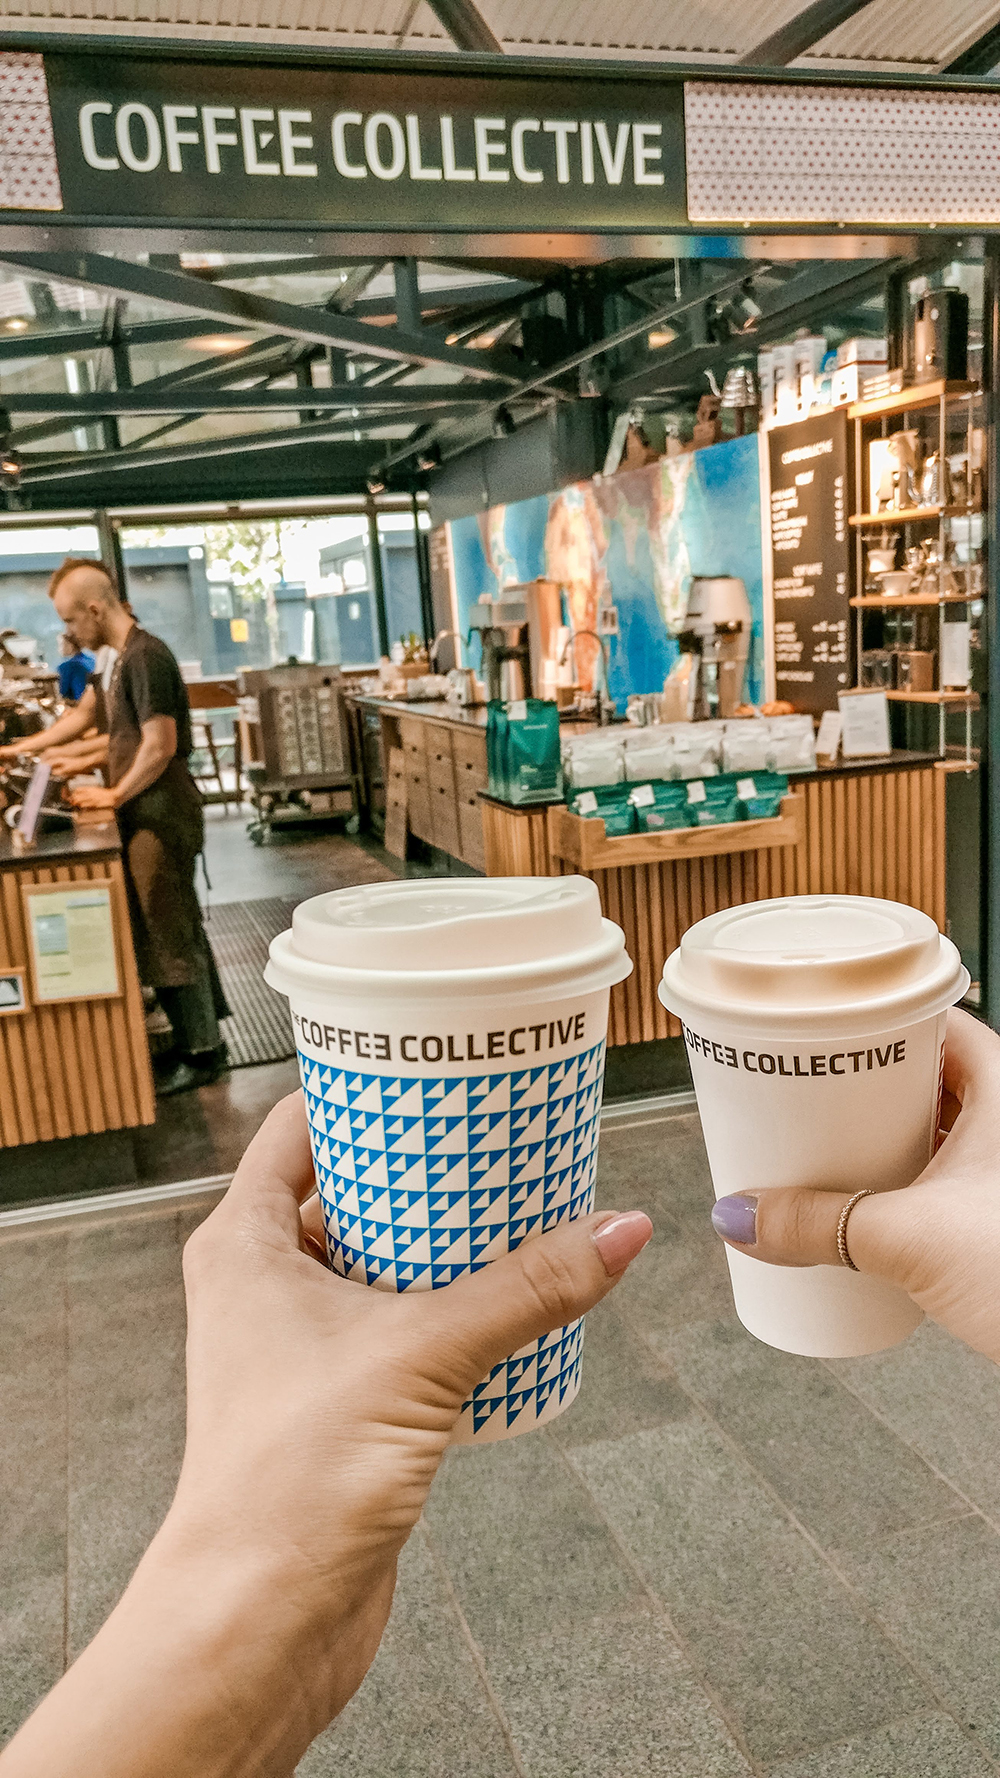 Coffee Collective at Torvehallerne food market - Copenhagen 3-day travel itinerary | Aliz's Wonderland